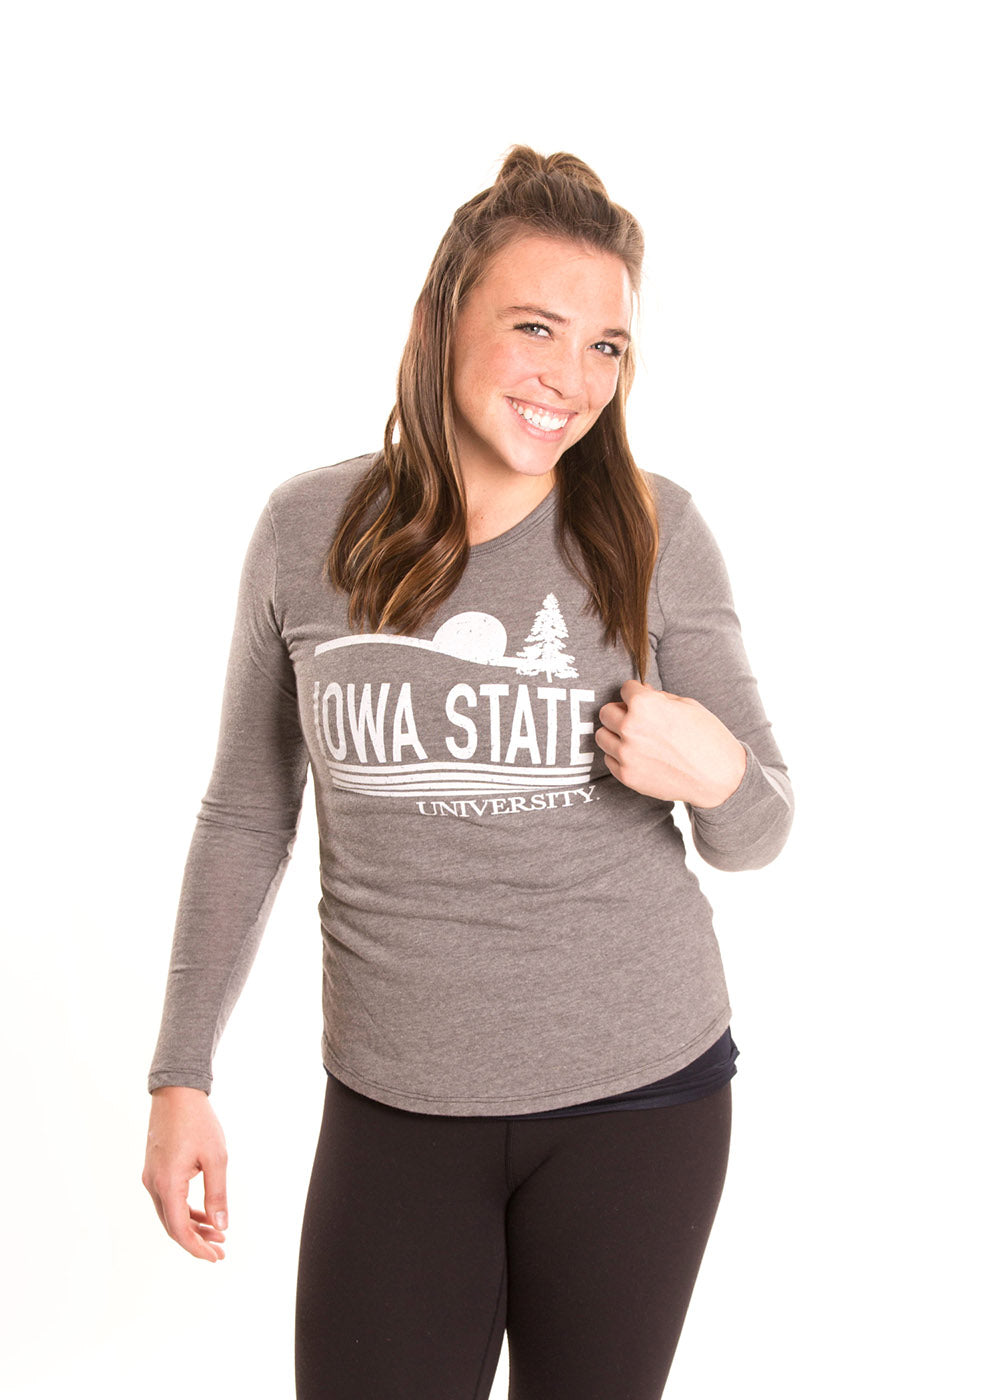 IOWA STATE UNIVERSITY Cyclones Women's Long Sleeve Tee